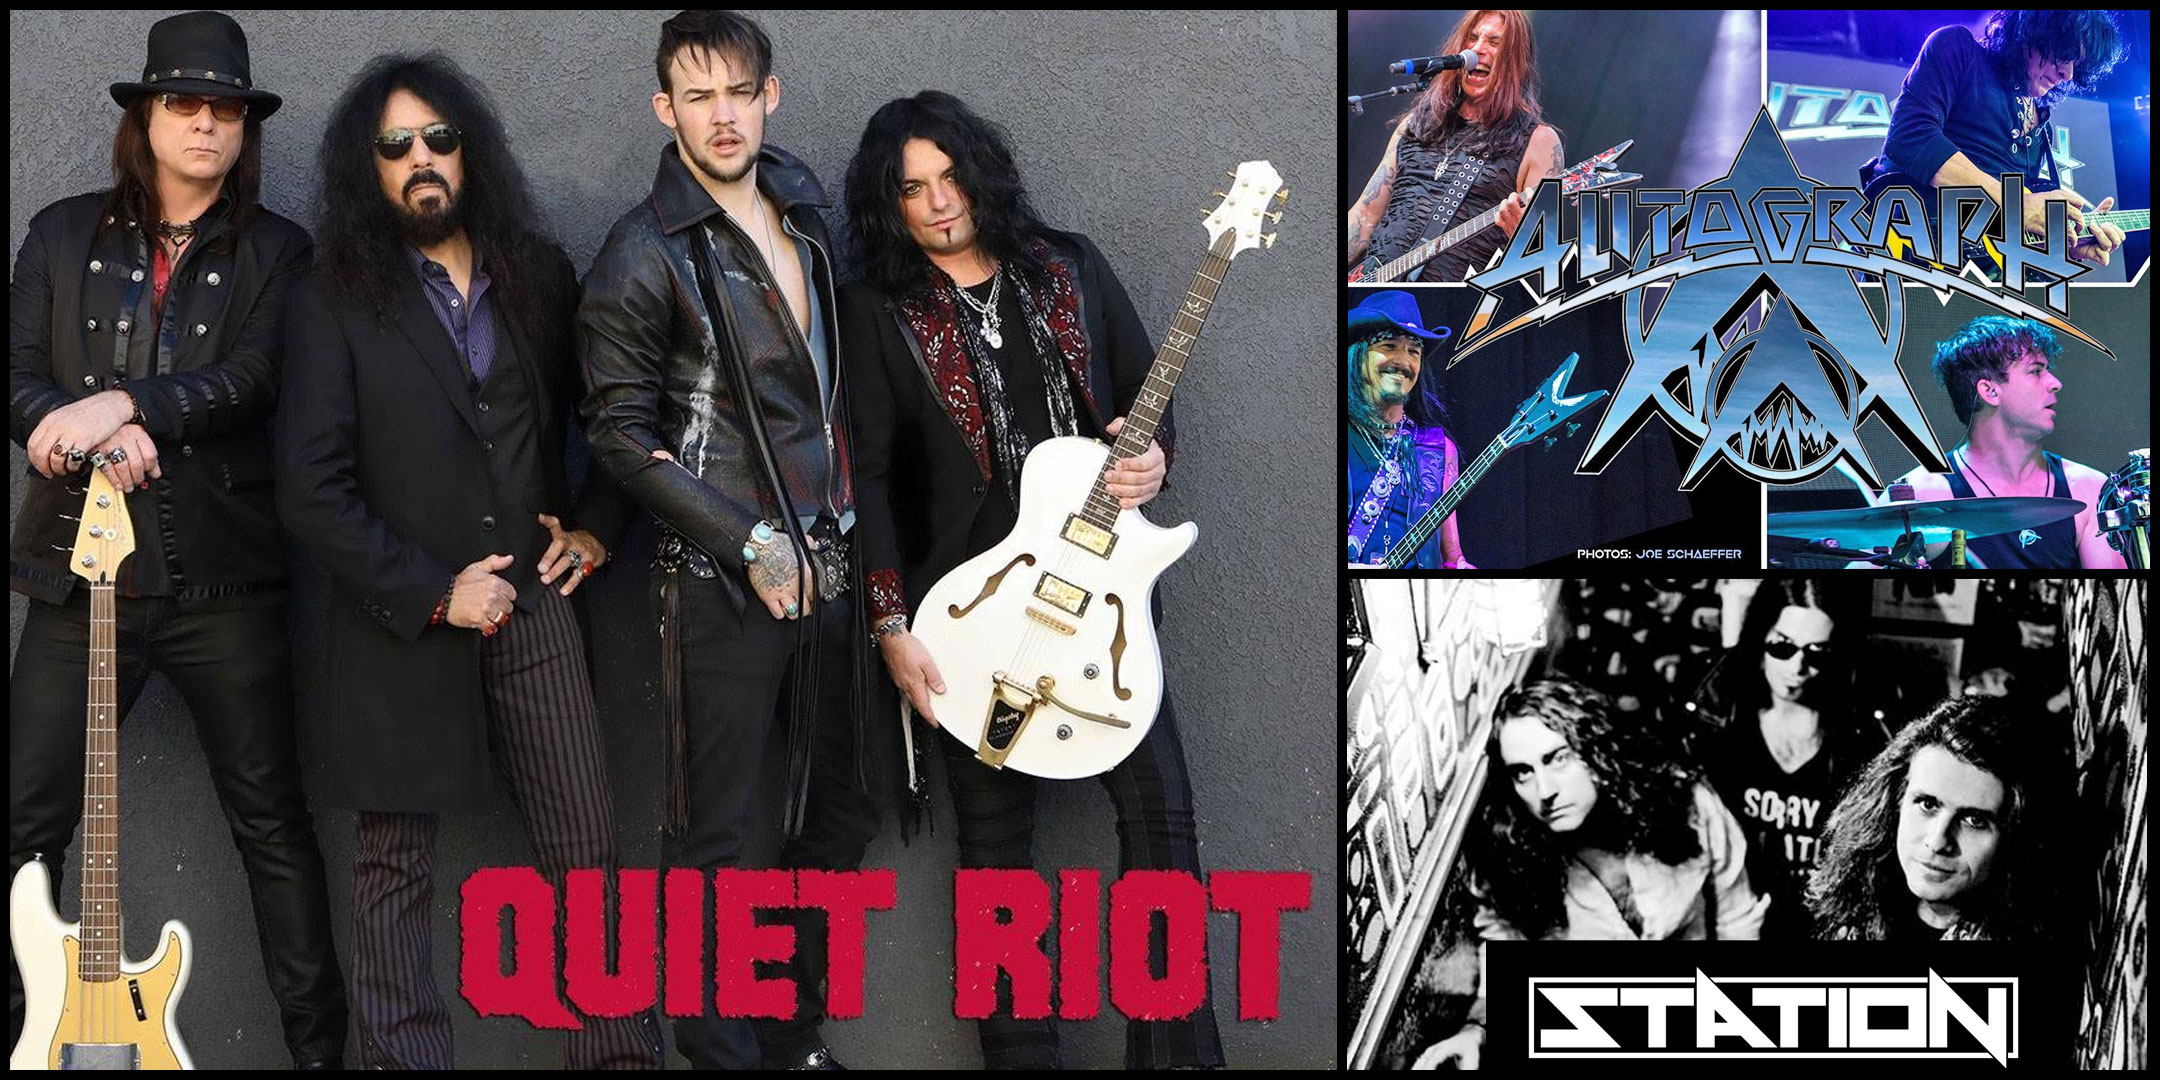 Quiet Riot with special guest Autograph and Station